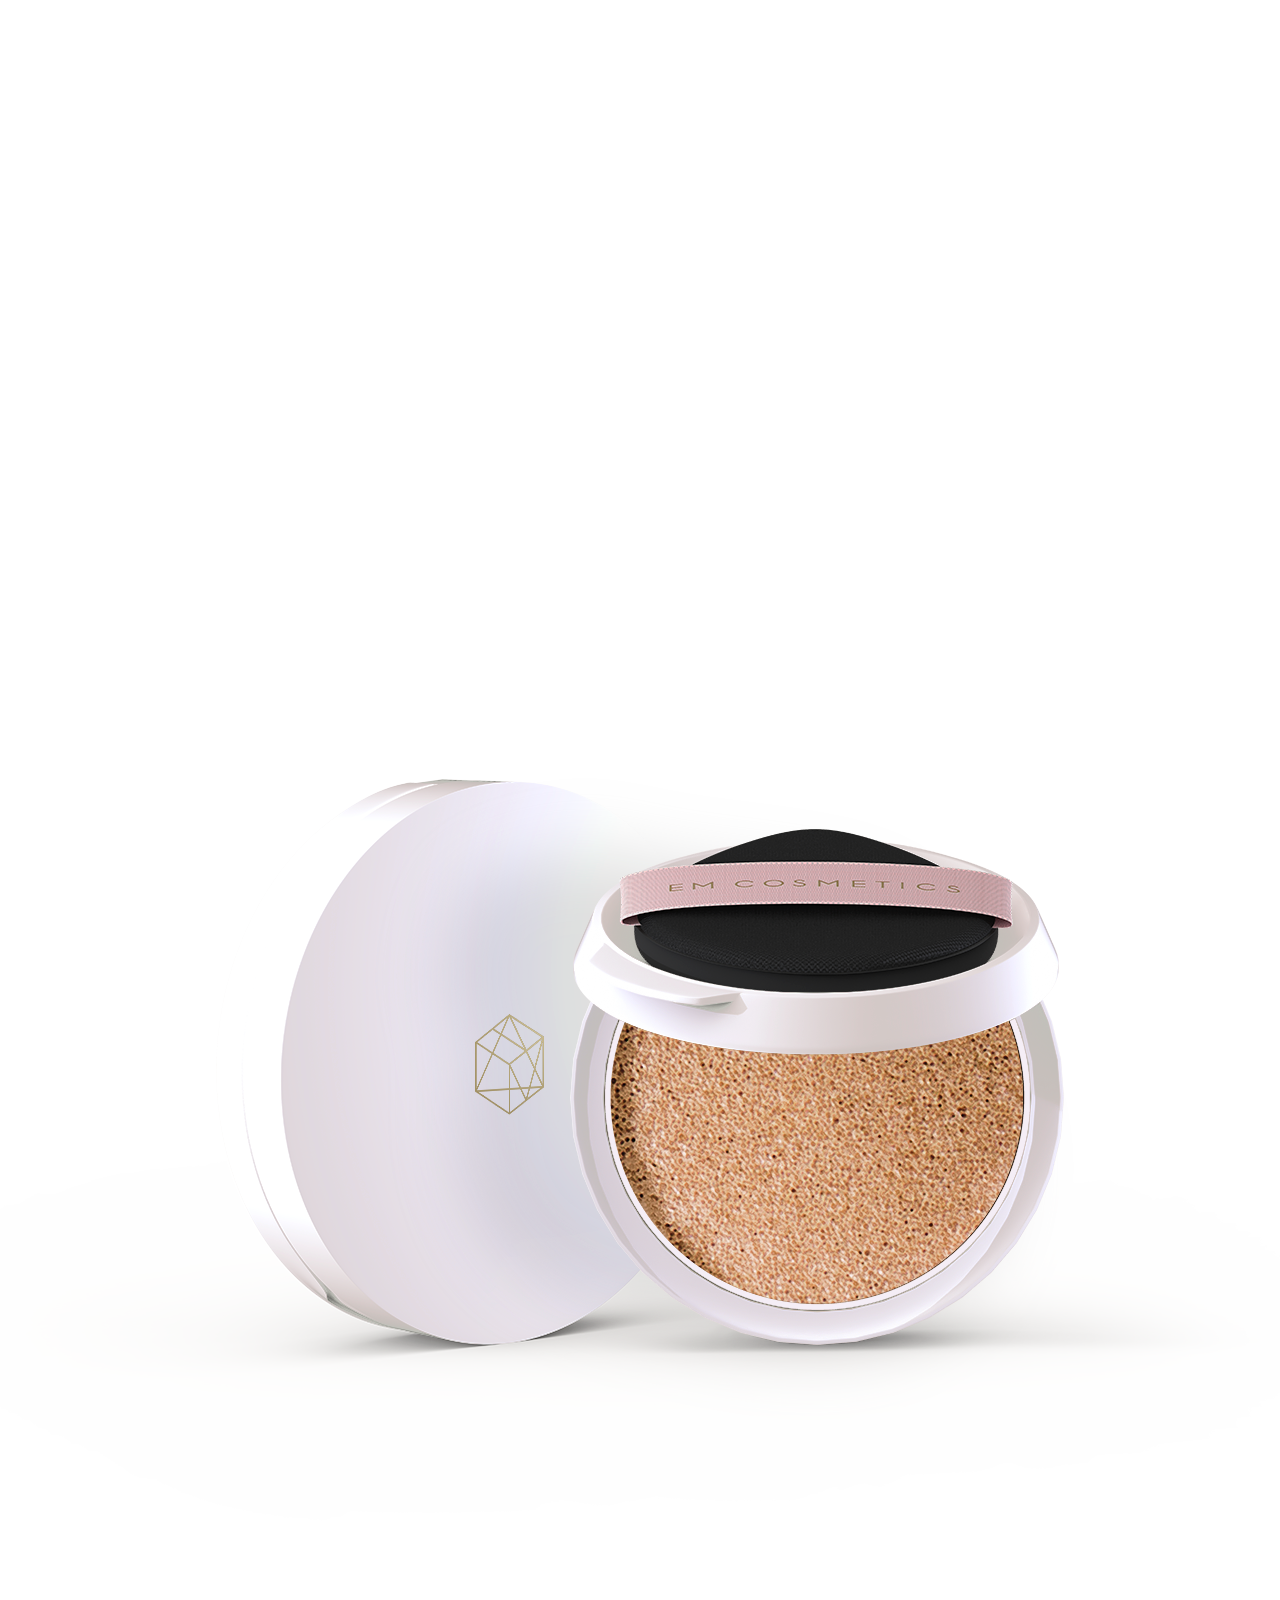 daydream-cushion-tinted-spf-gentle-light-compact